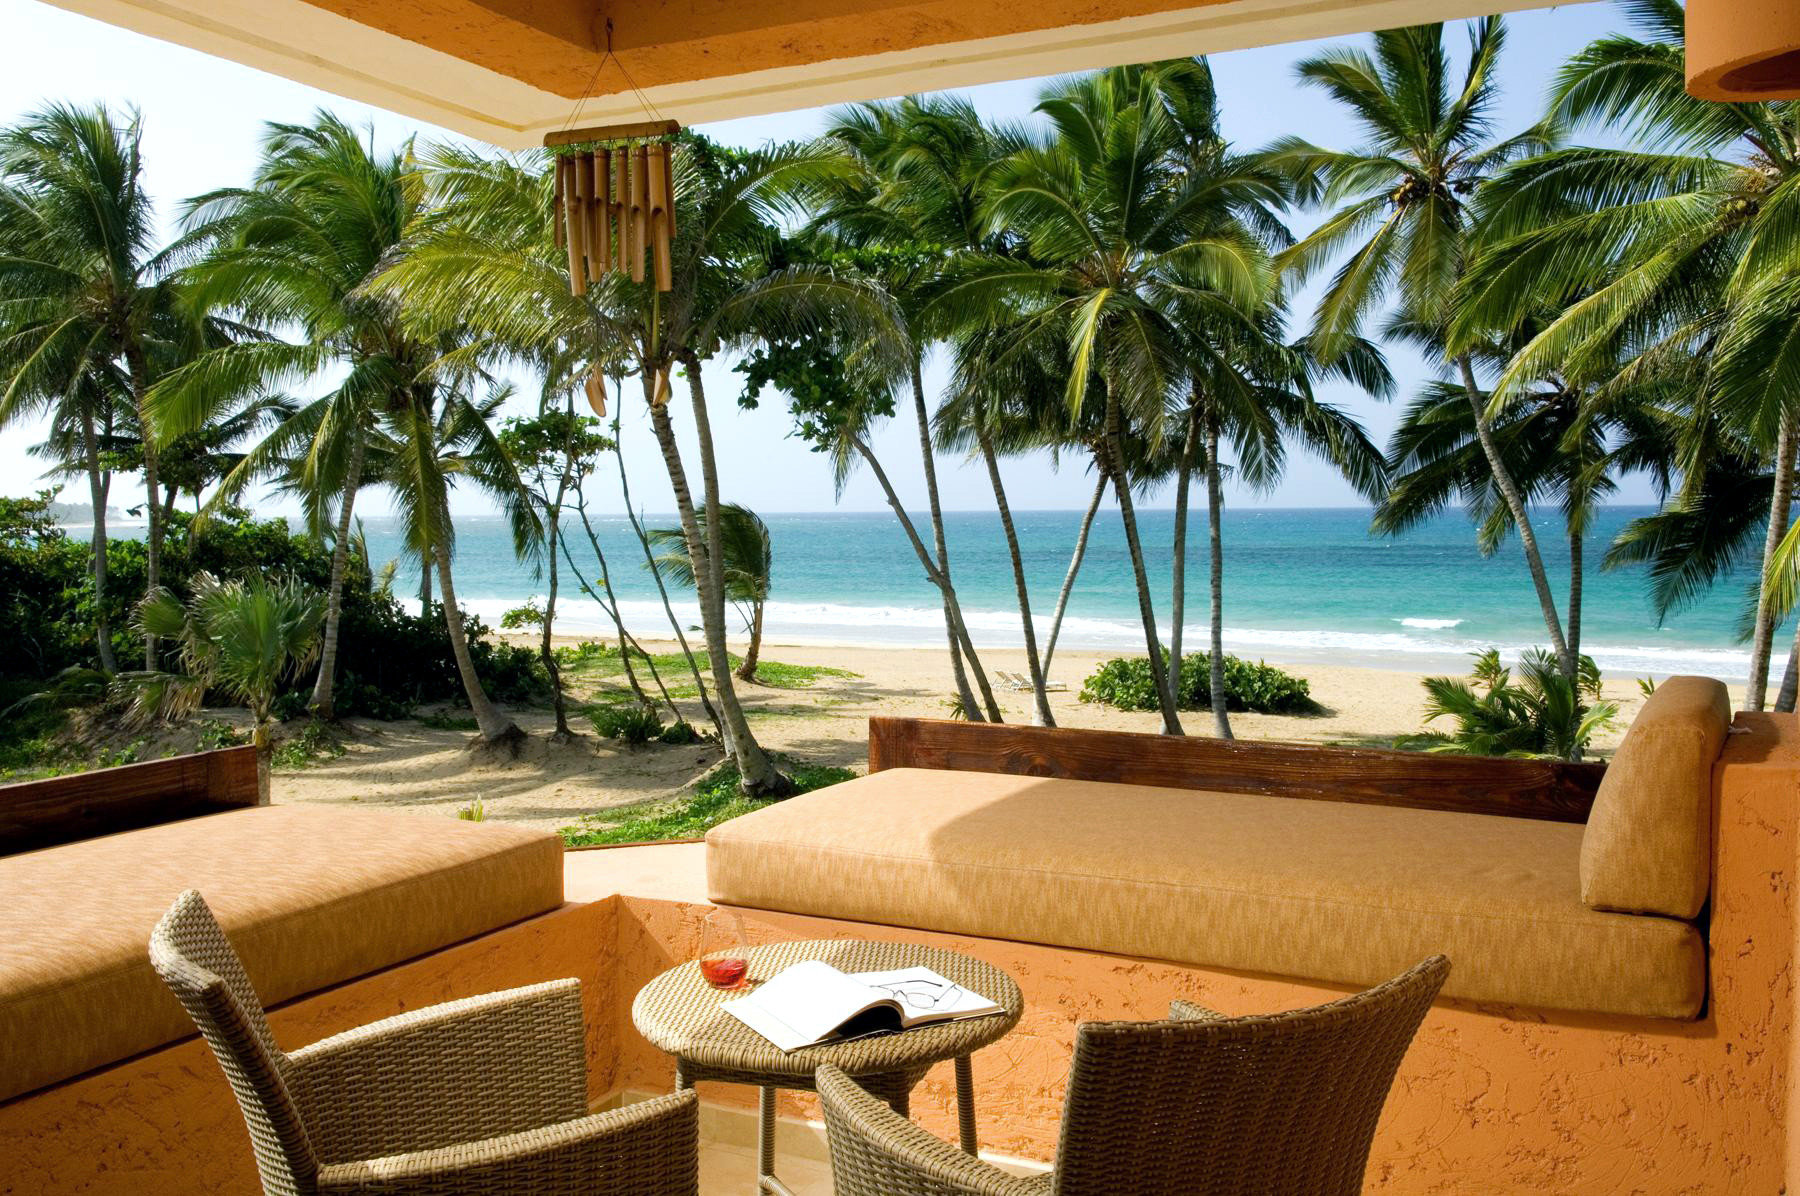 Adult-only All-inclusive Beachfront Boutique Deck Grounds Honeymoon Romance tree water property Resort leisure caribbean Villa palm swimming pool condominium home hacienda eco hotel Pool overlooking